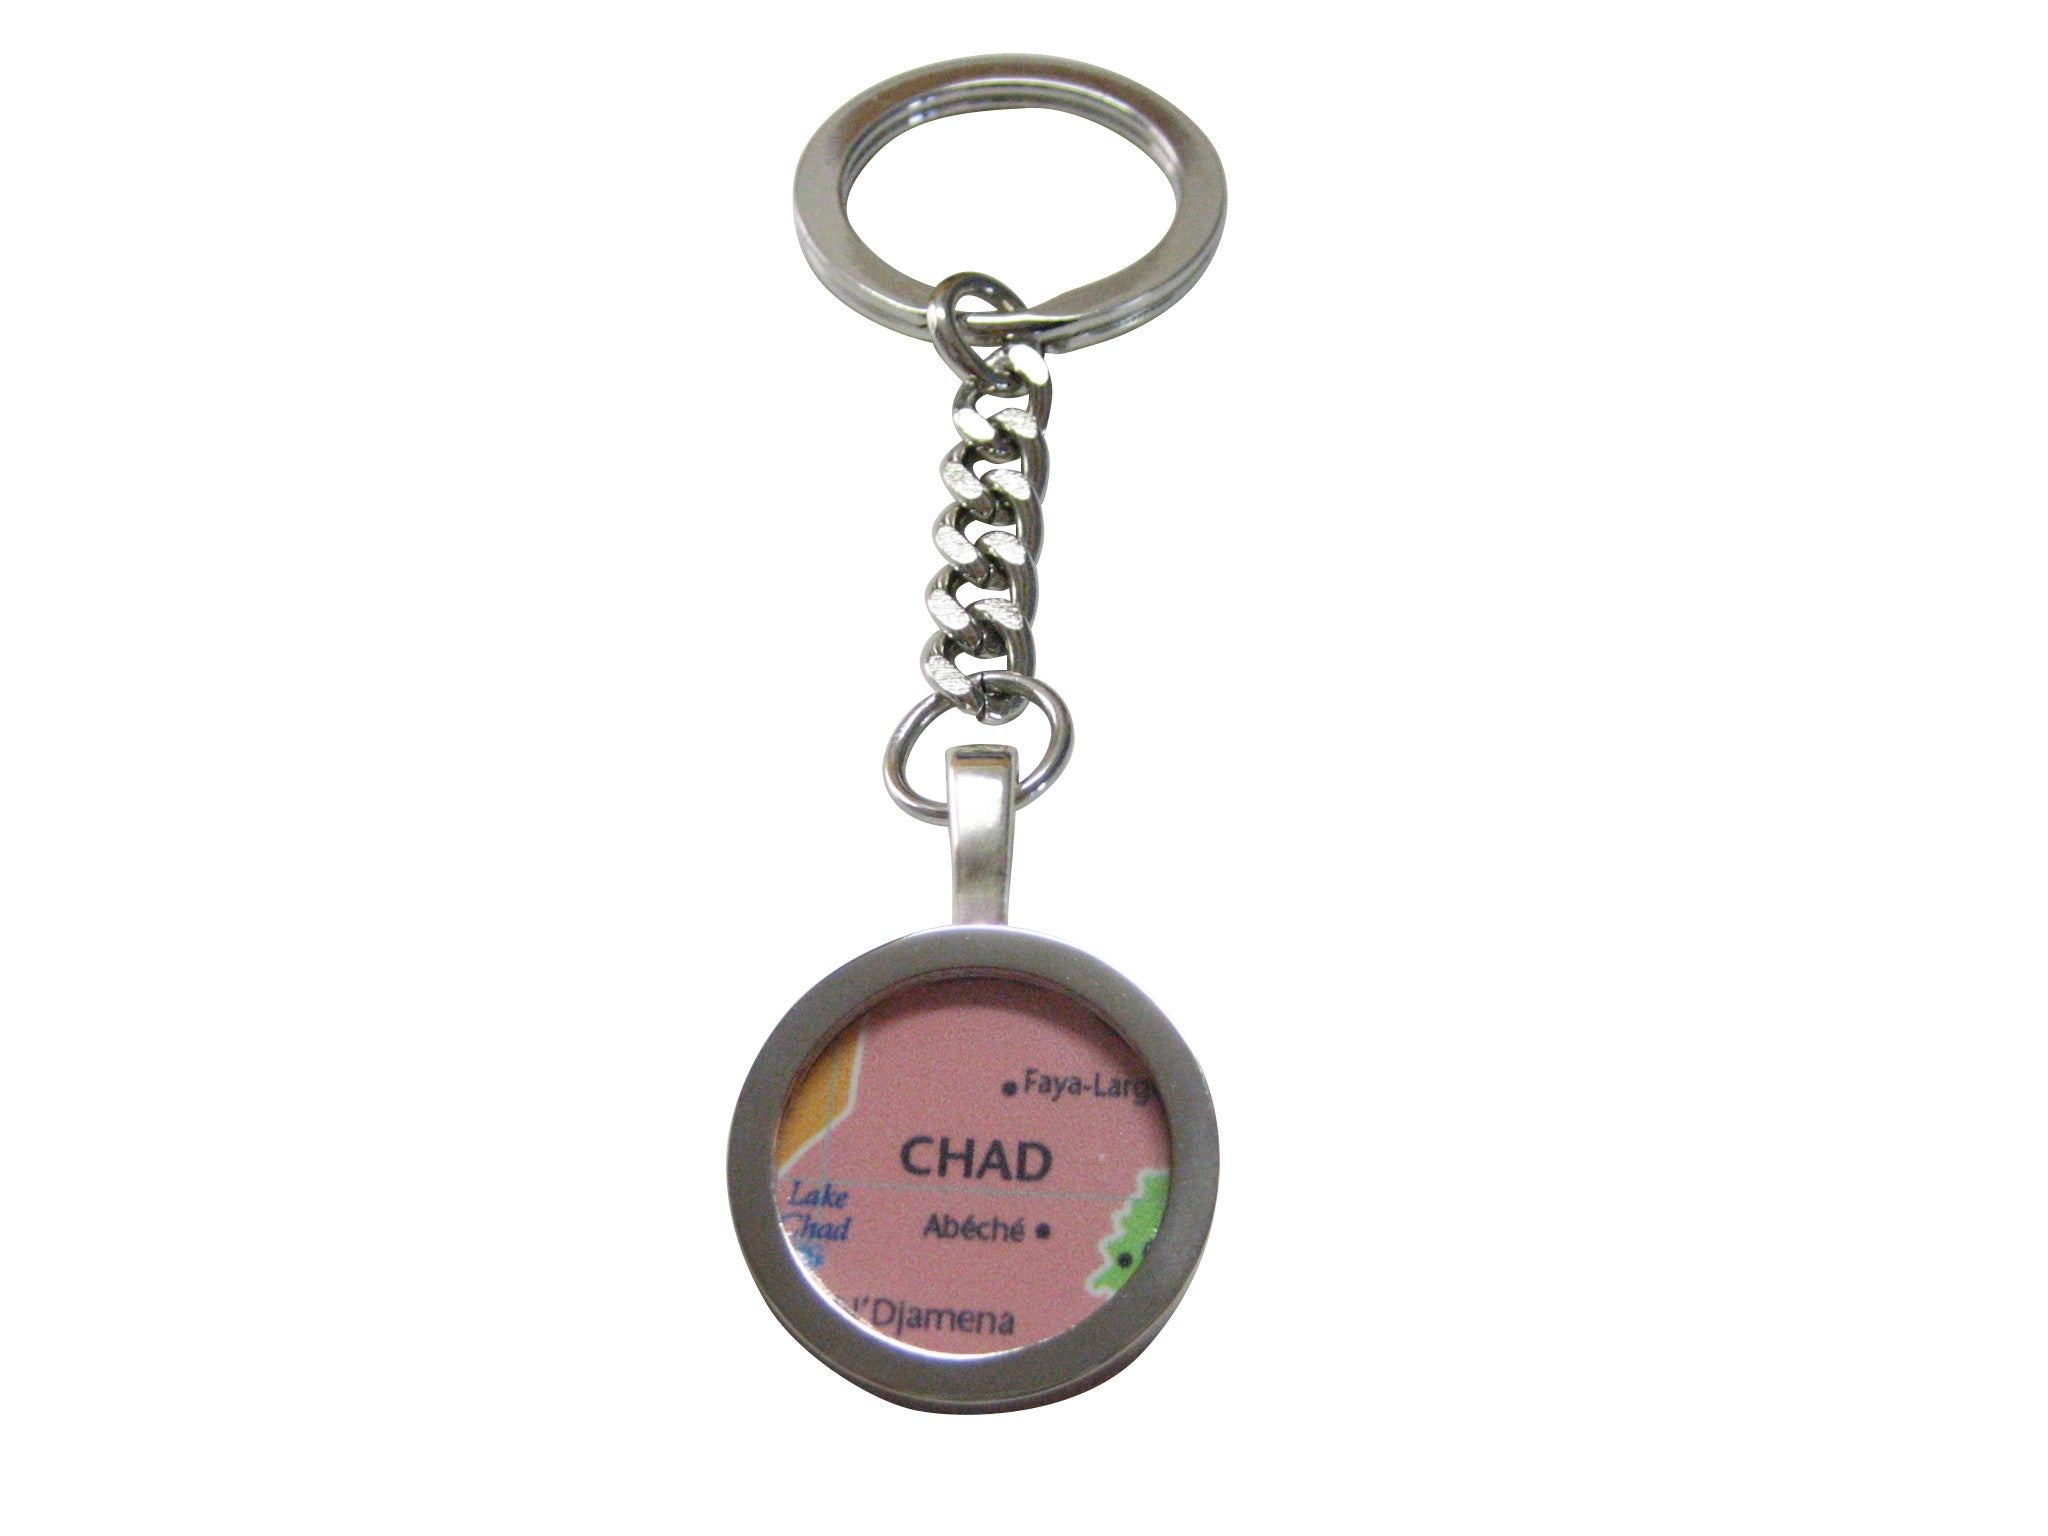 Chad Map Pendant Keychain